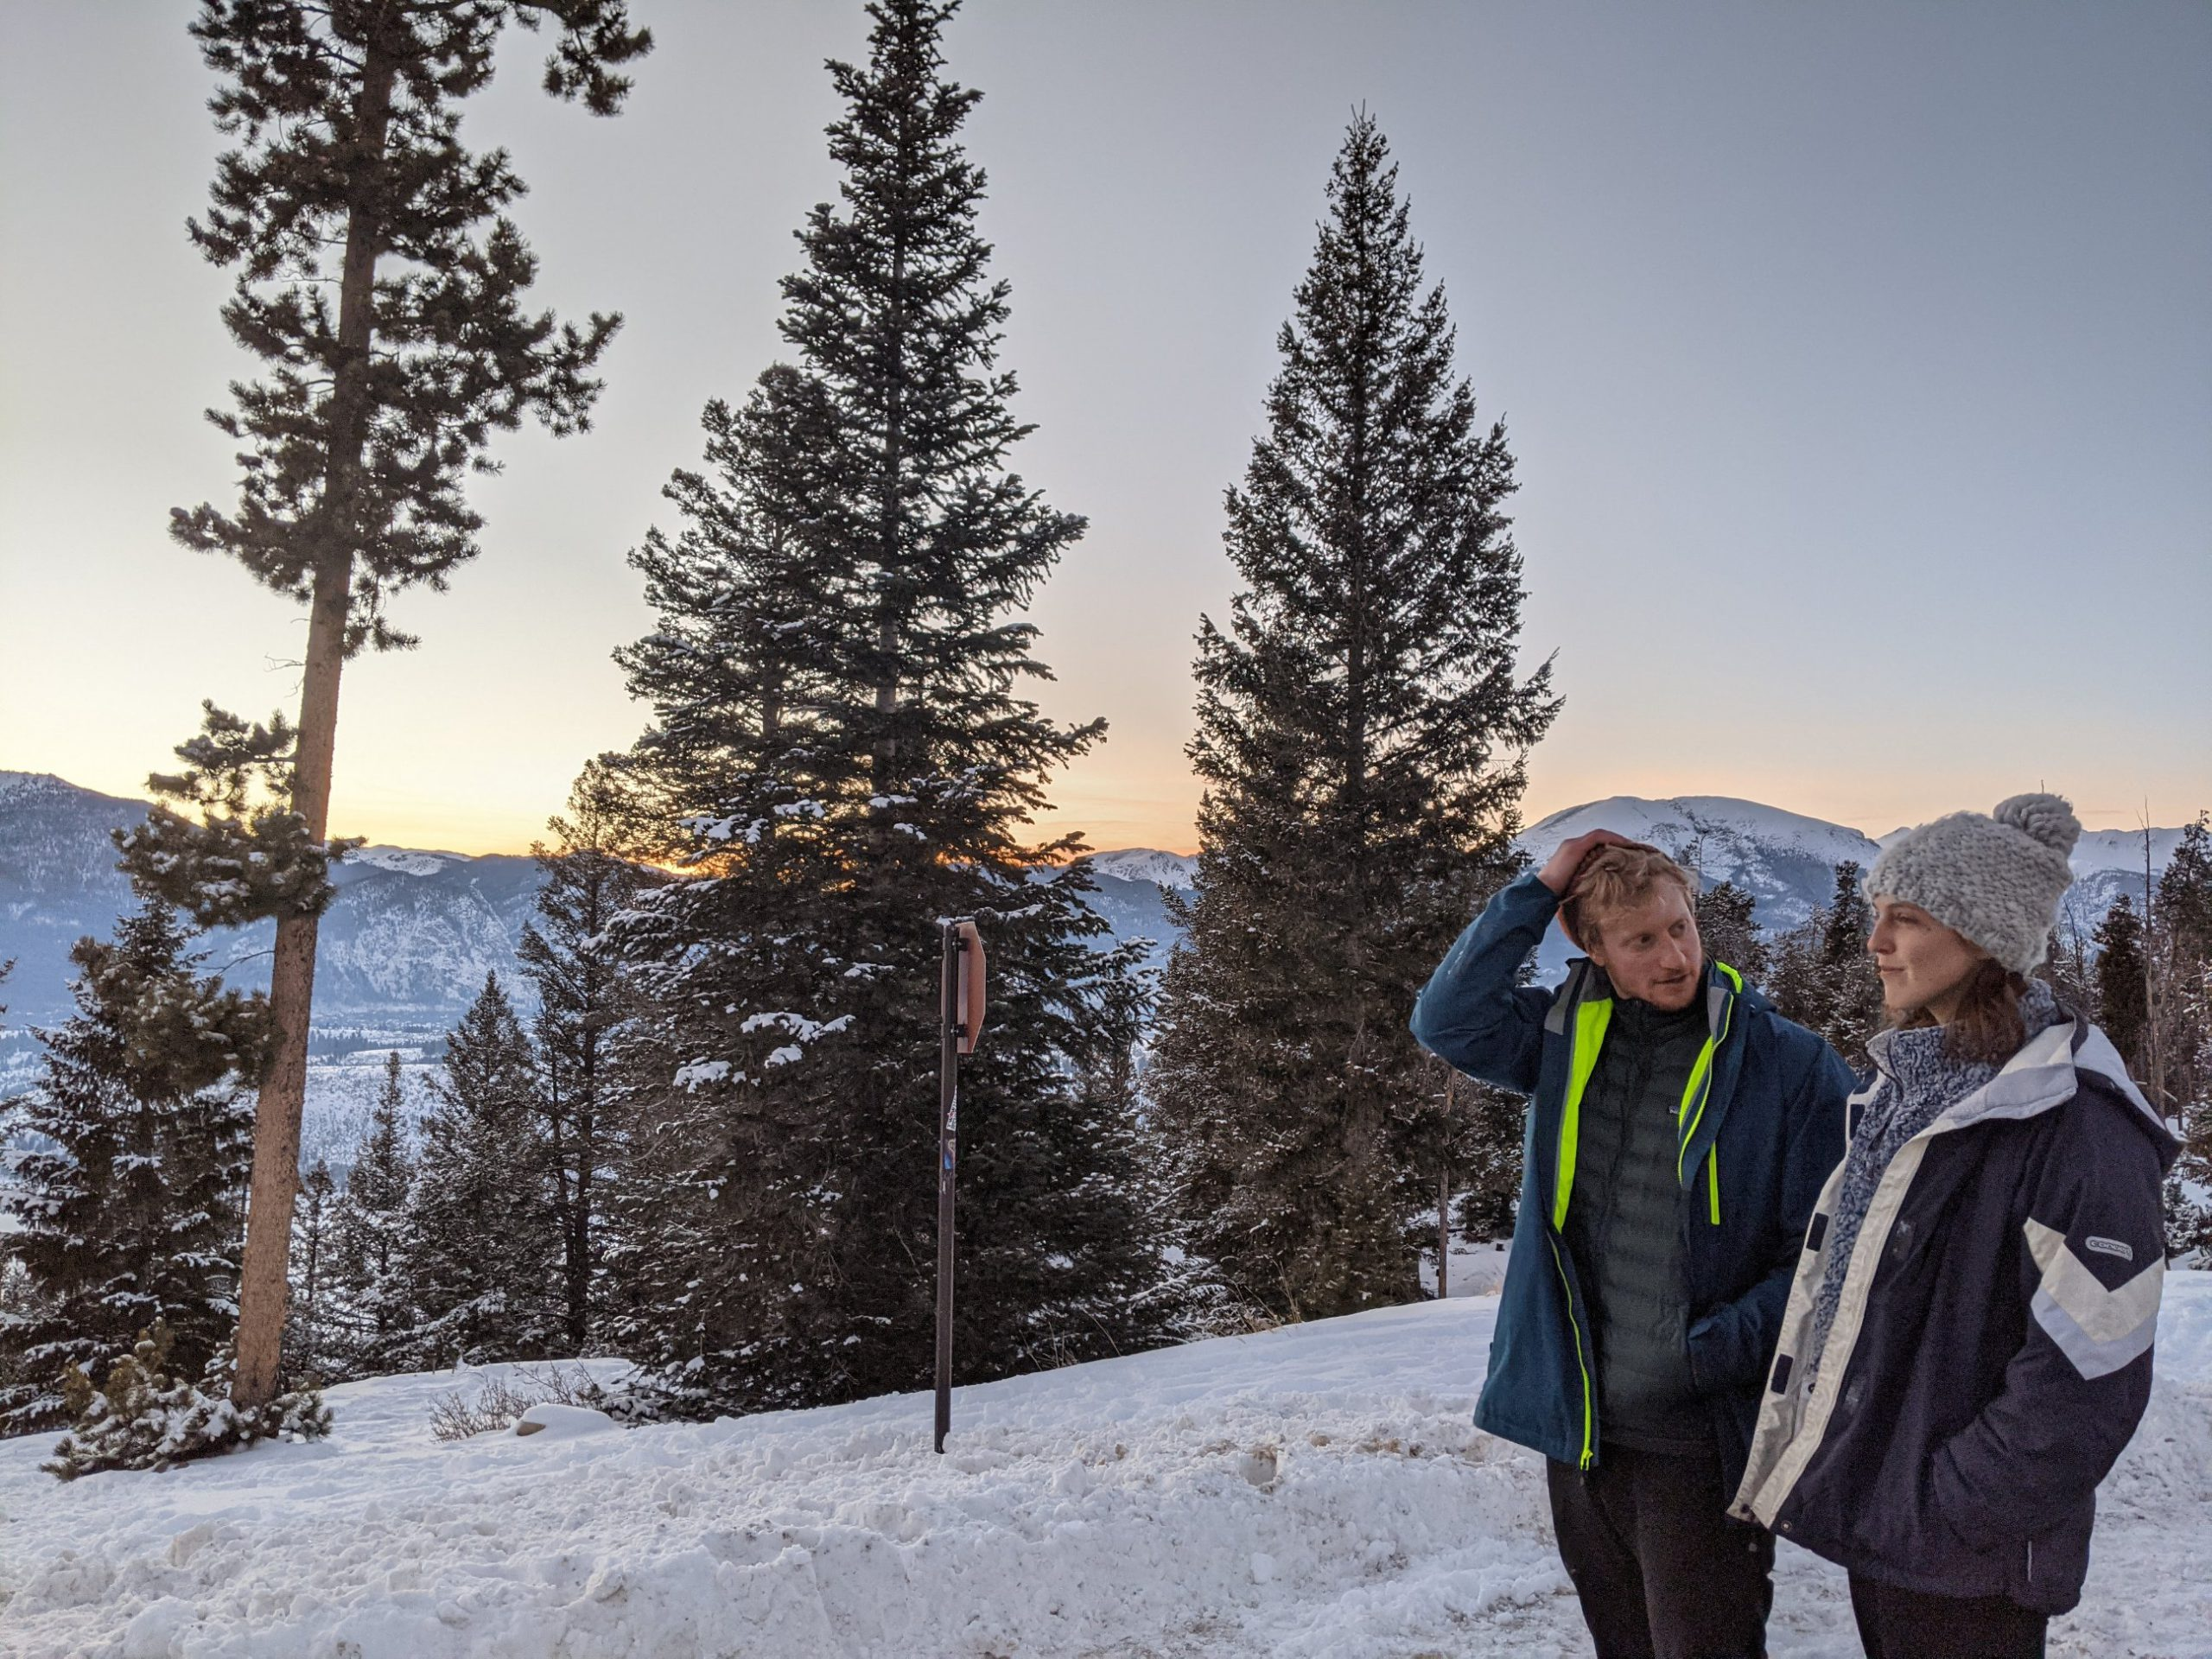 Photo of Ben Weinberg and Reagan Cline in Keystone, Colorado, to illustrate a story about their road trip in which they used carbon offsets from Cloverly to neutralize the carbon impact of their transportation